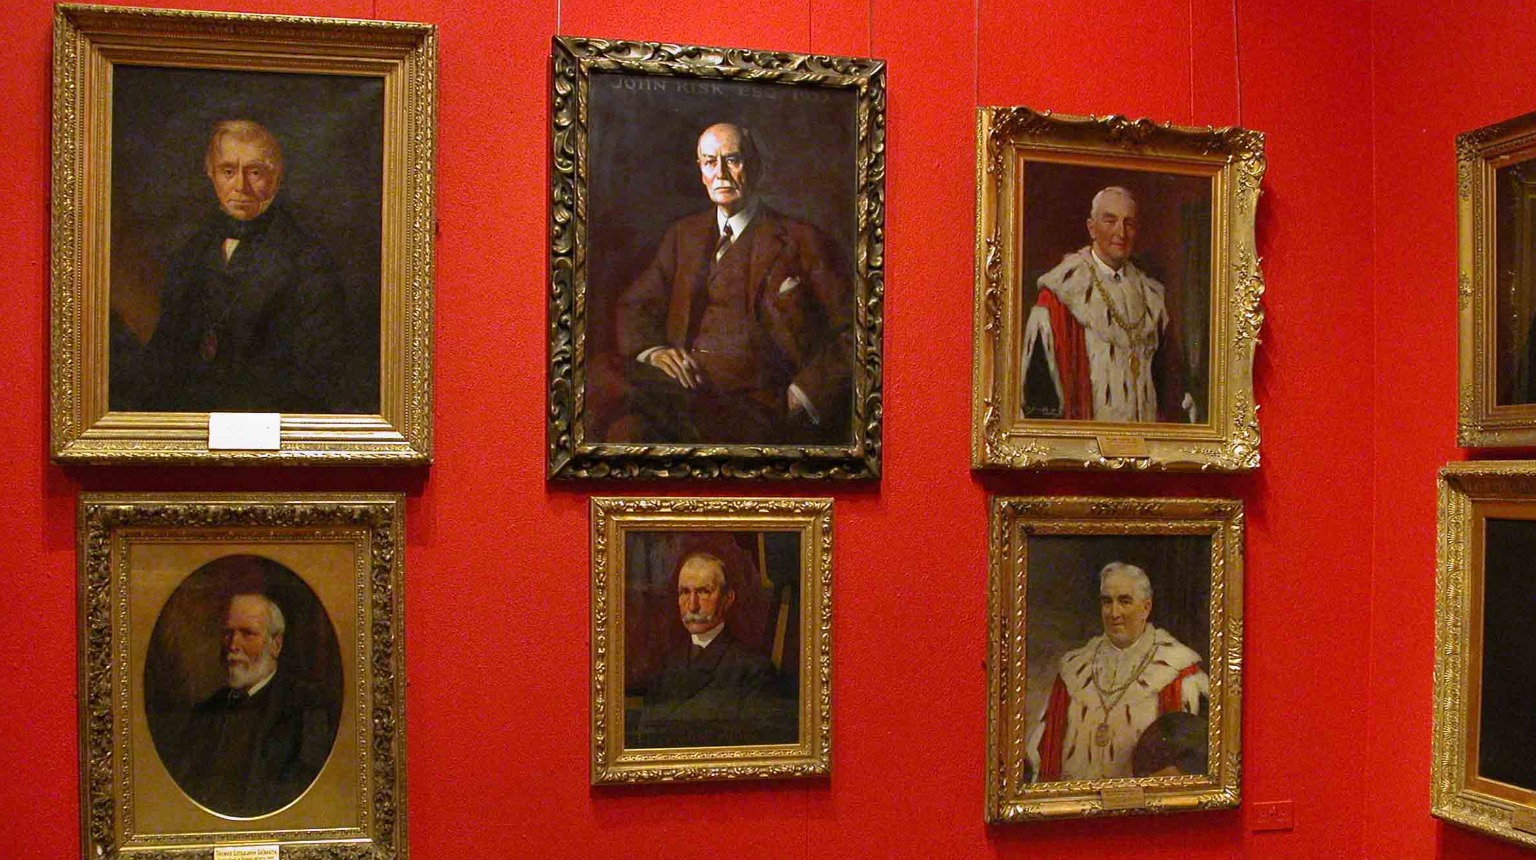 Stirling Smith Art Gallery and Museum, portraits from the Stirling Smith collections